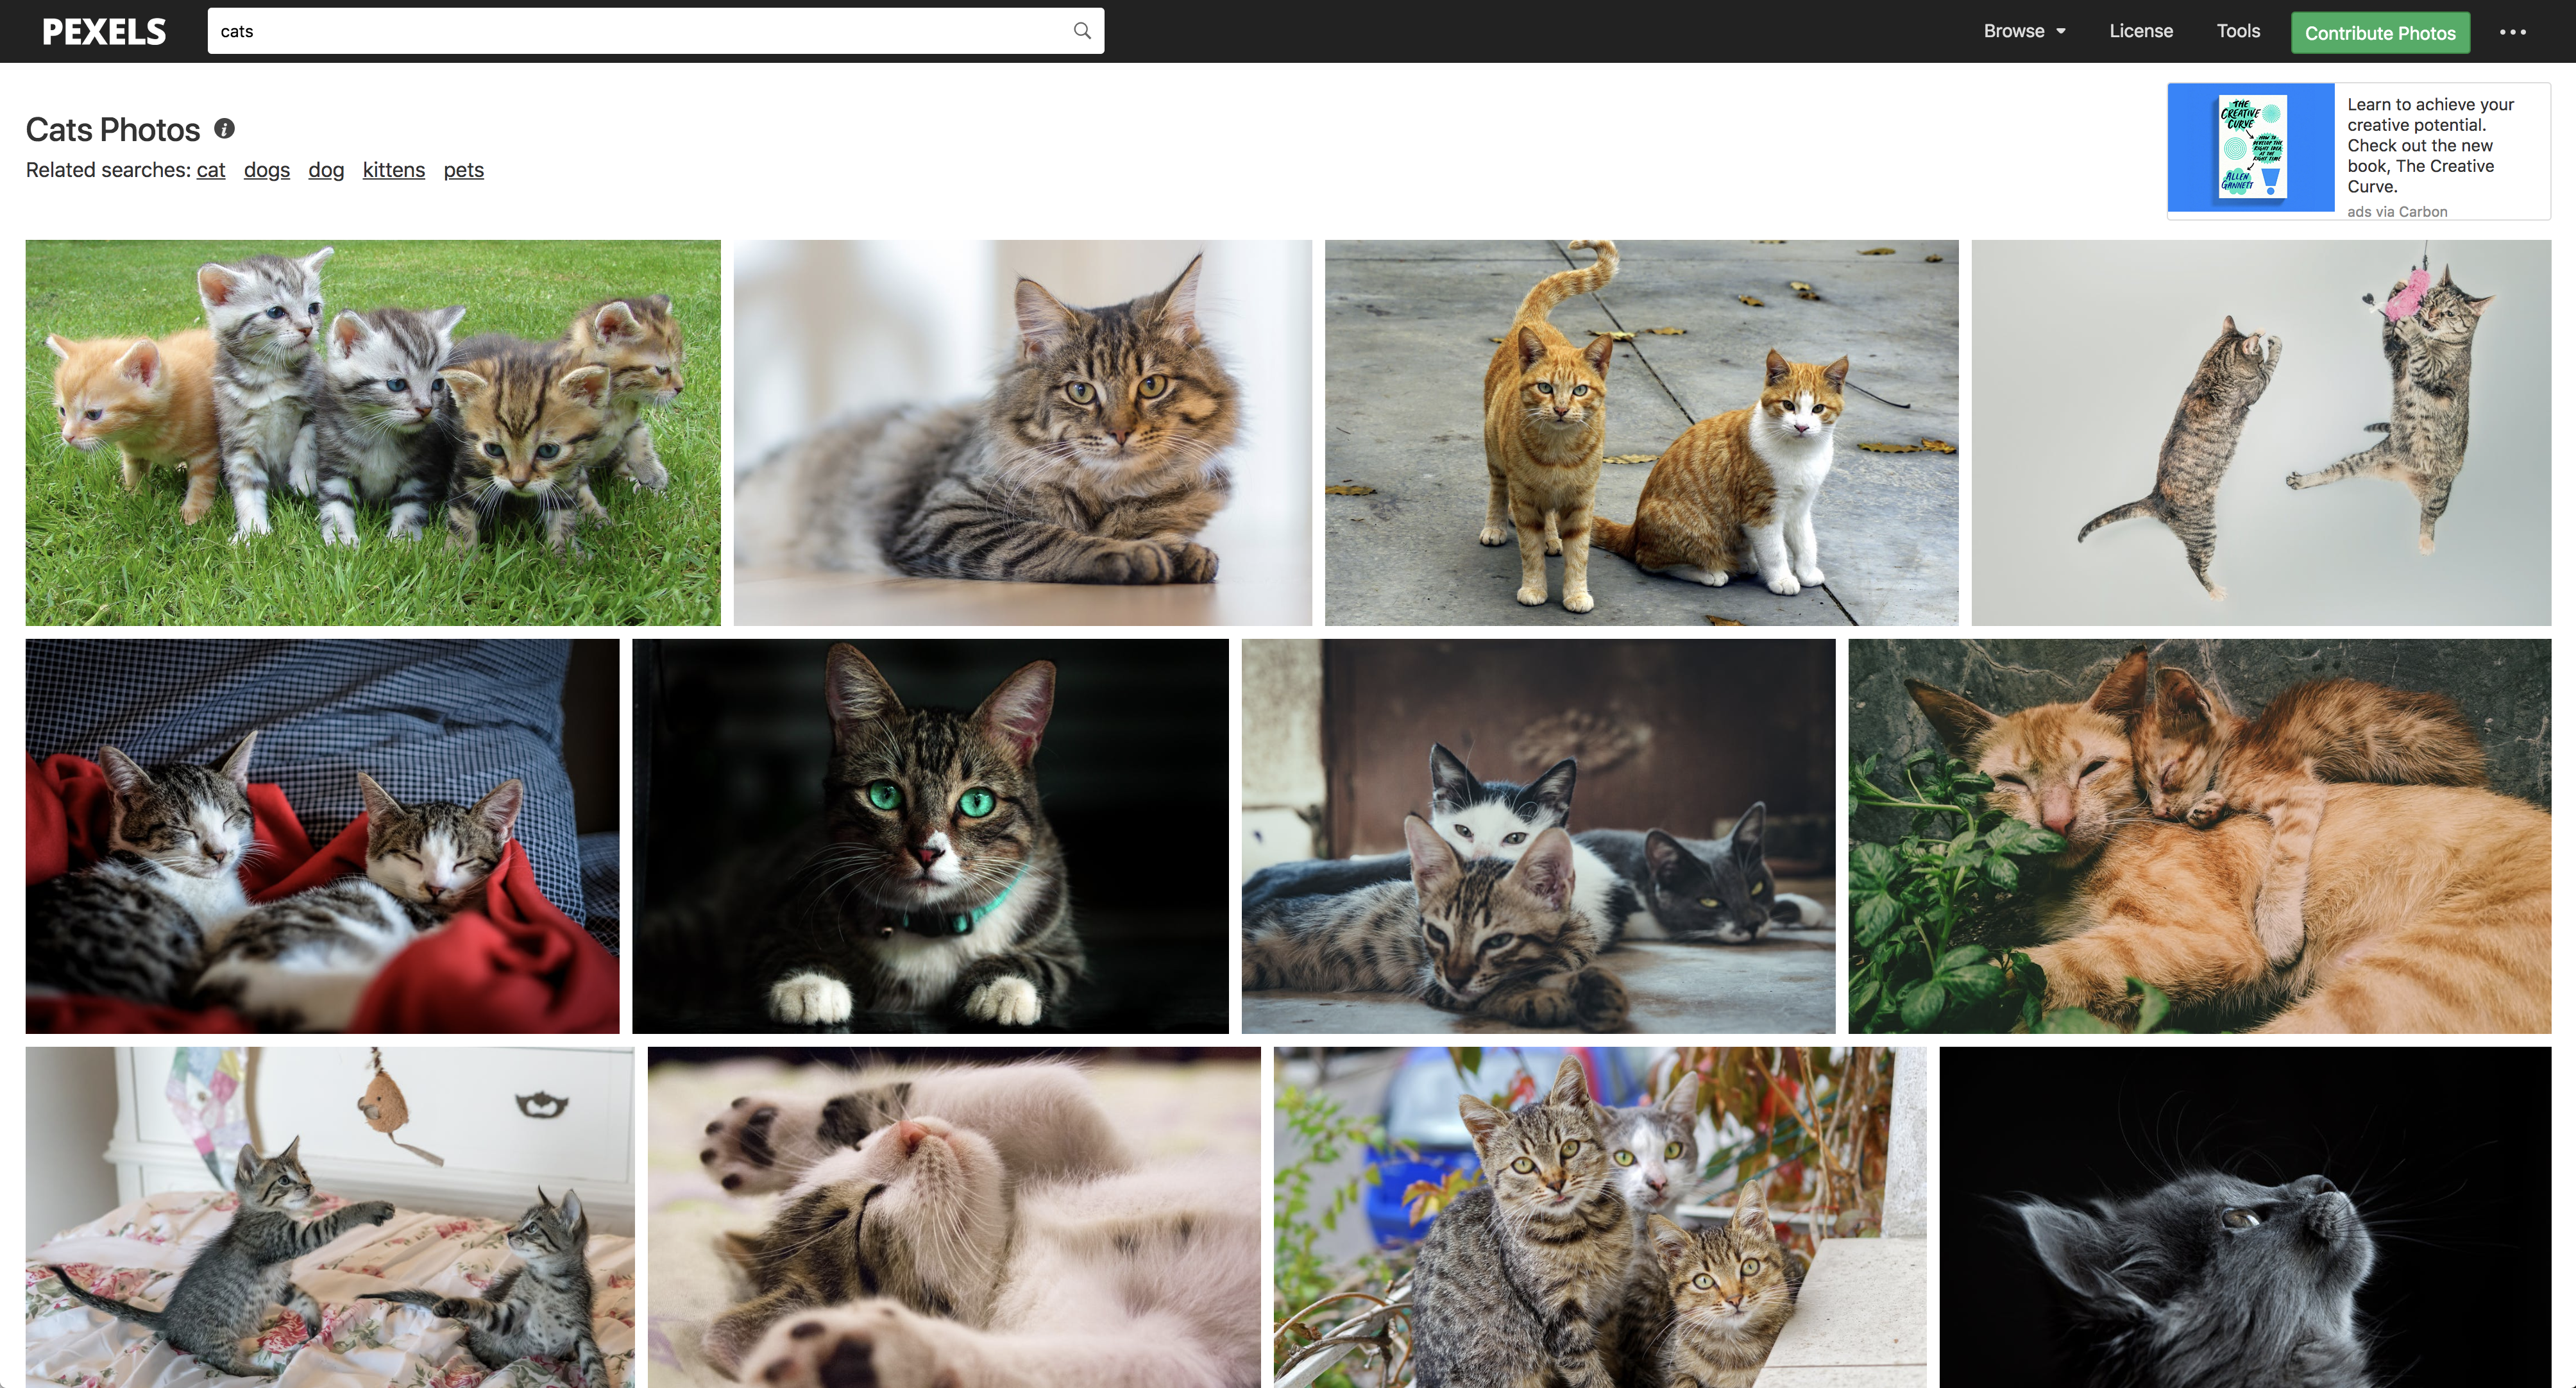 Fast Web Scraping With ReactPHP: Download All Images From a